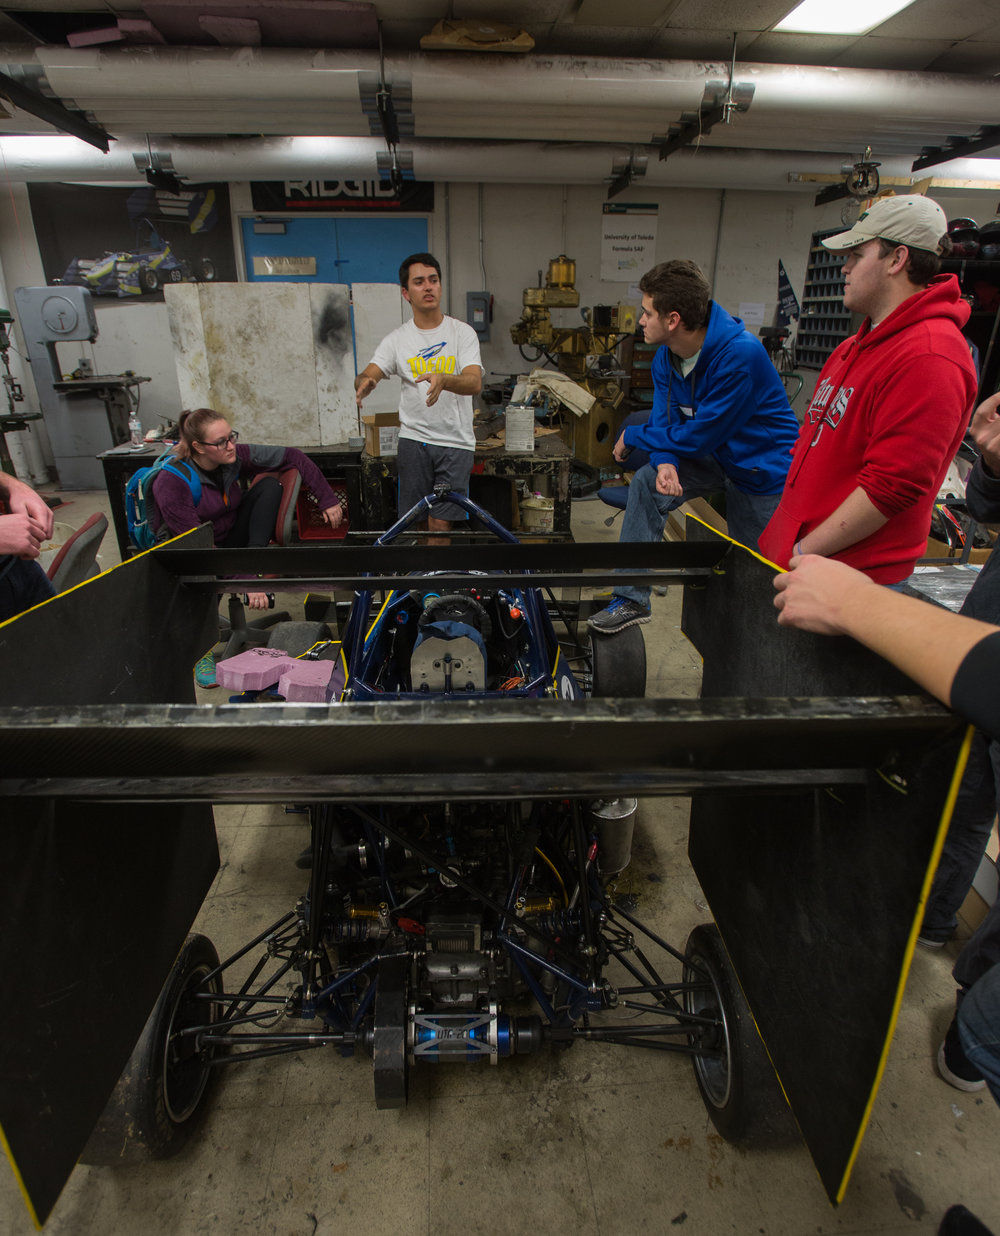 Aerodynamics group lead Jonathan Lesiecki leads a meeting for new team members interested in joining the aero group in the Formula SAE team lab in the University of Toledo's North Engineering Building.